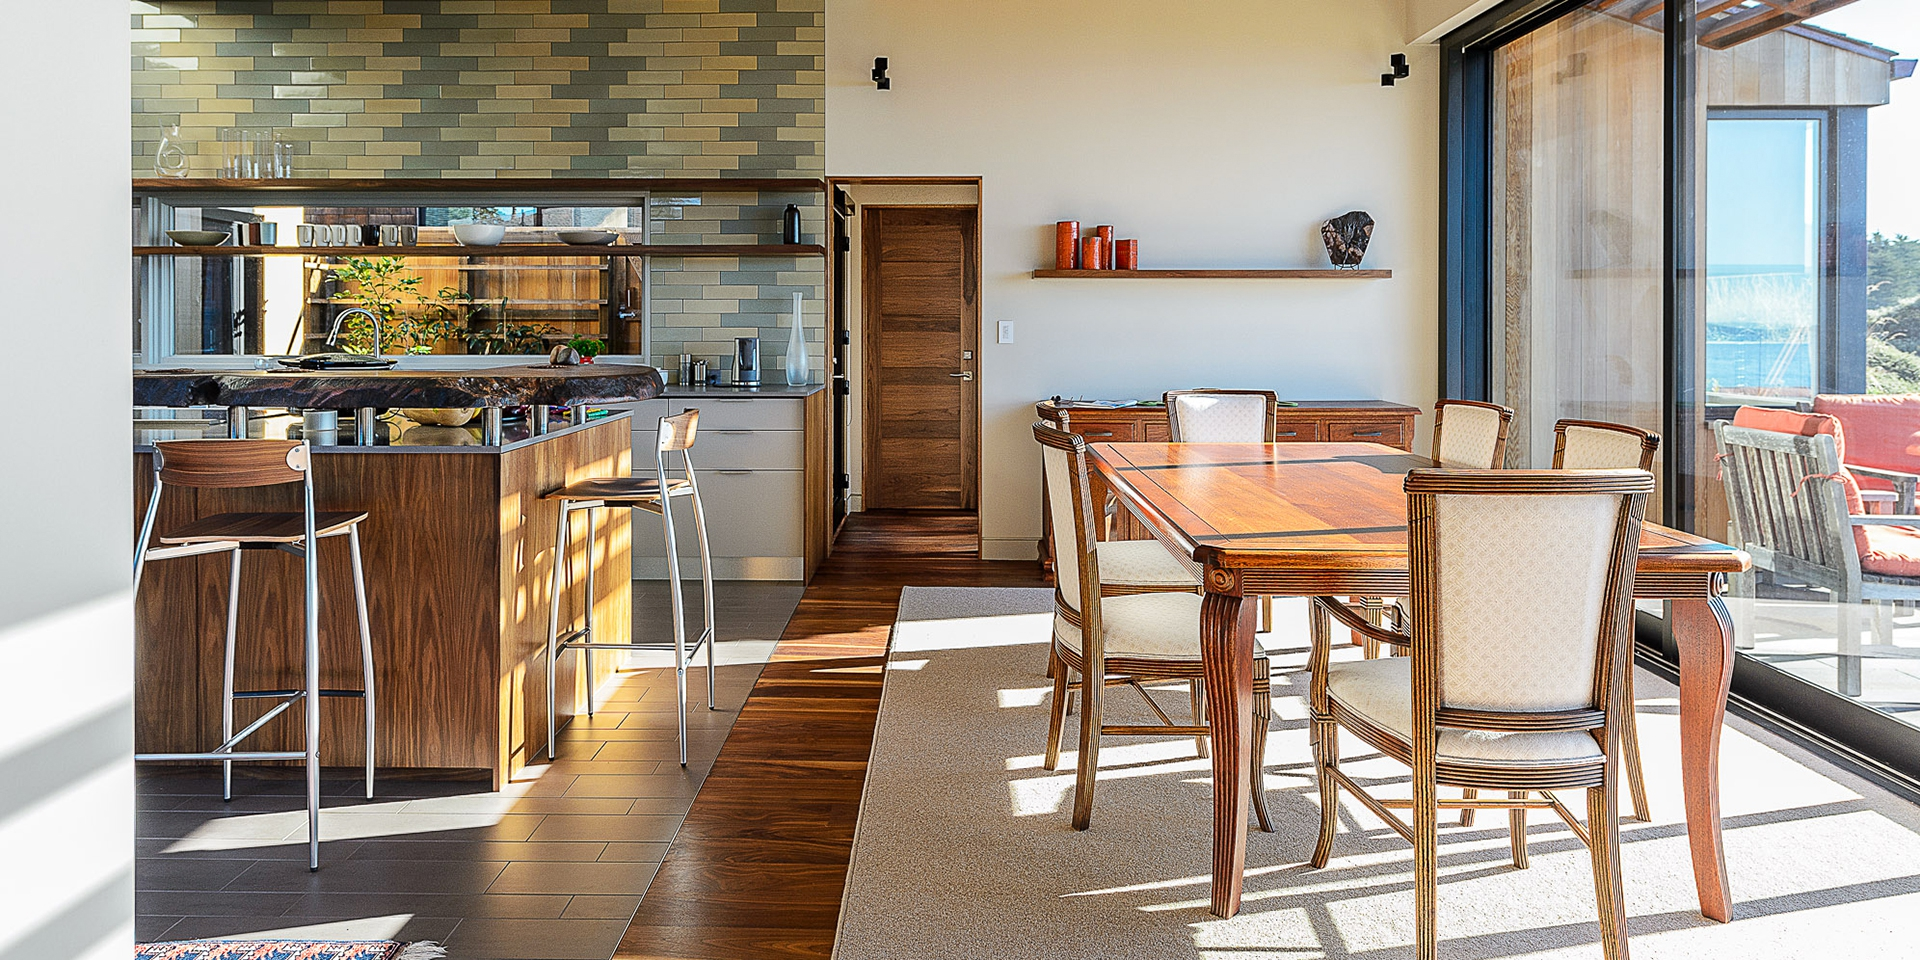 Leed platinum home on the sea ranch empire contracting inc for Leed platinum home